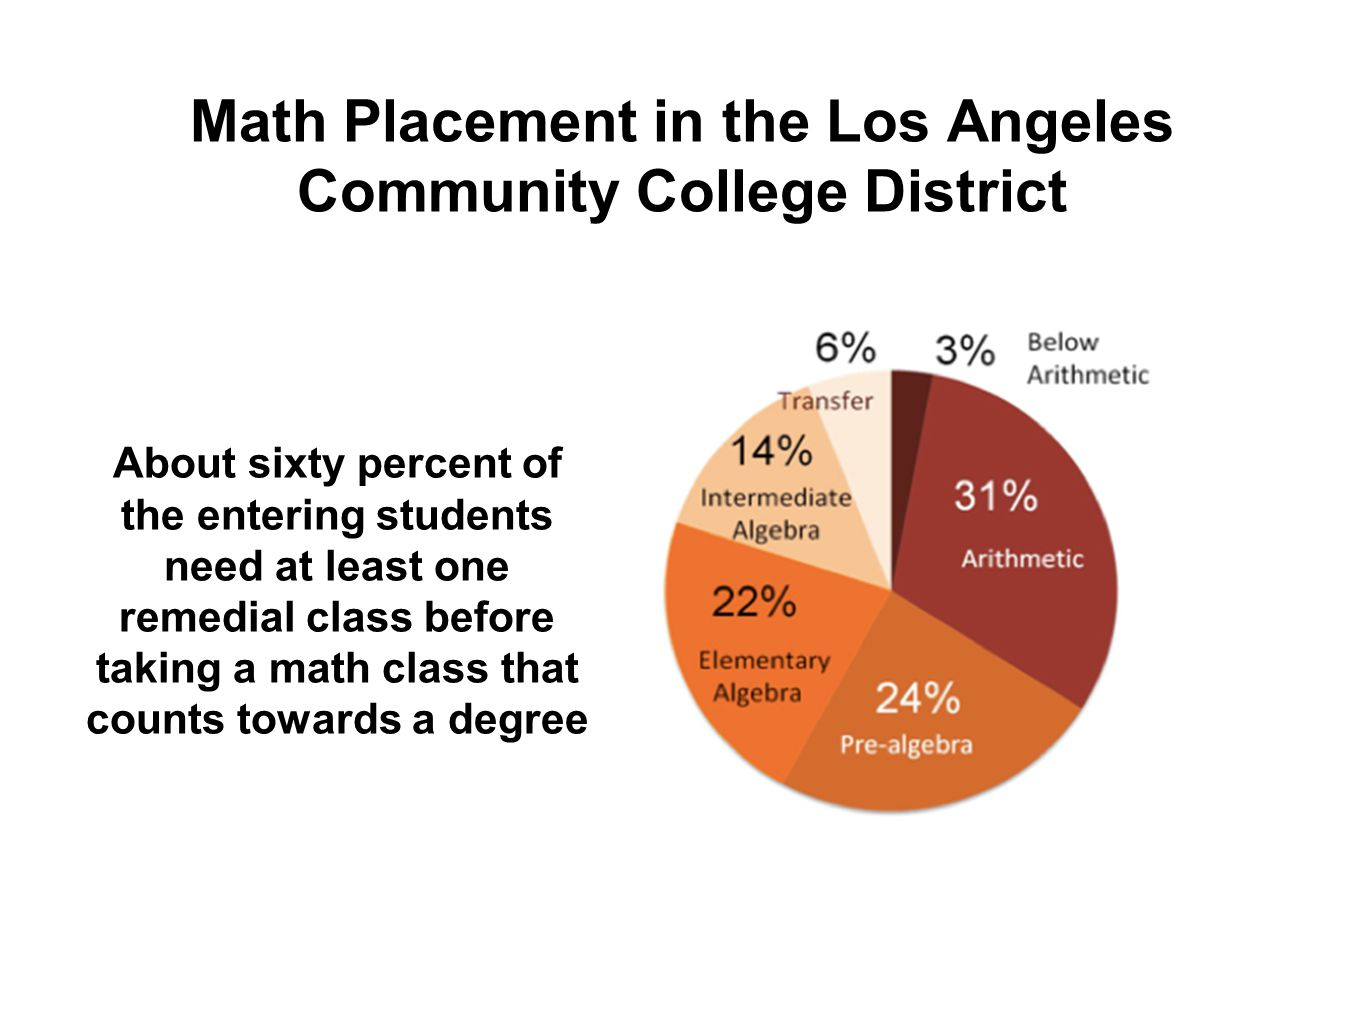 Math Placement in the Los Angeles Community College District About sixty percent of the entering students need at least one remedial class before taki